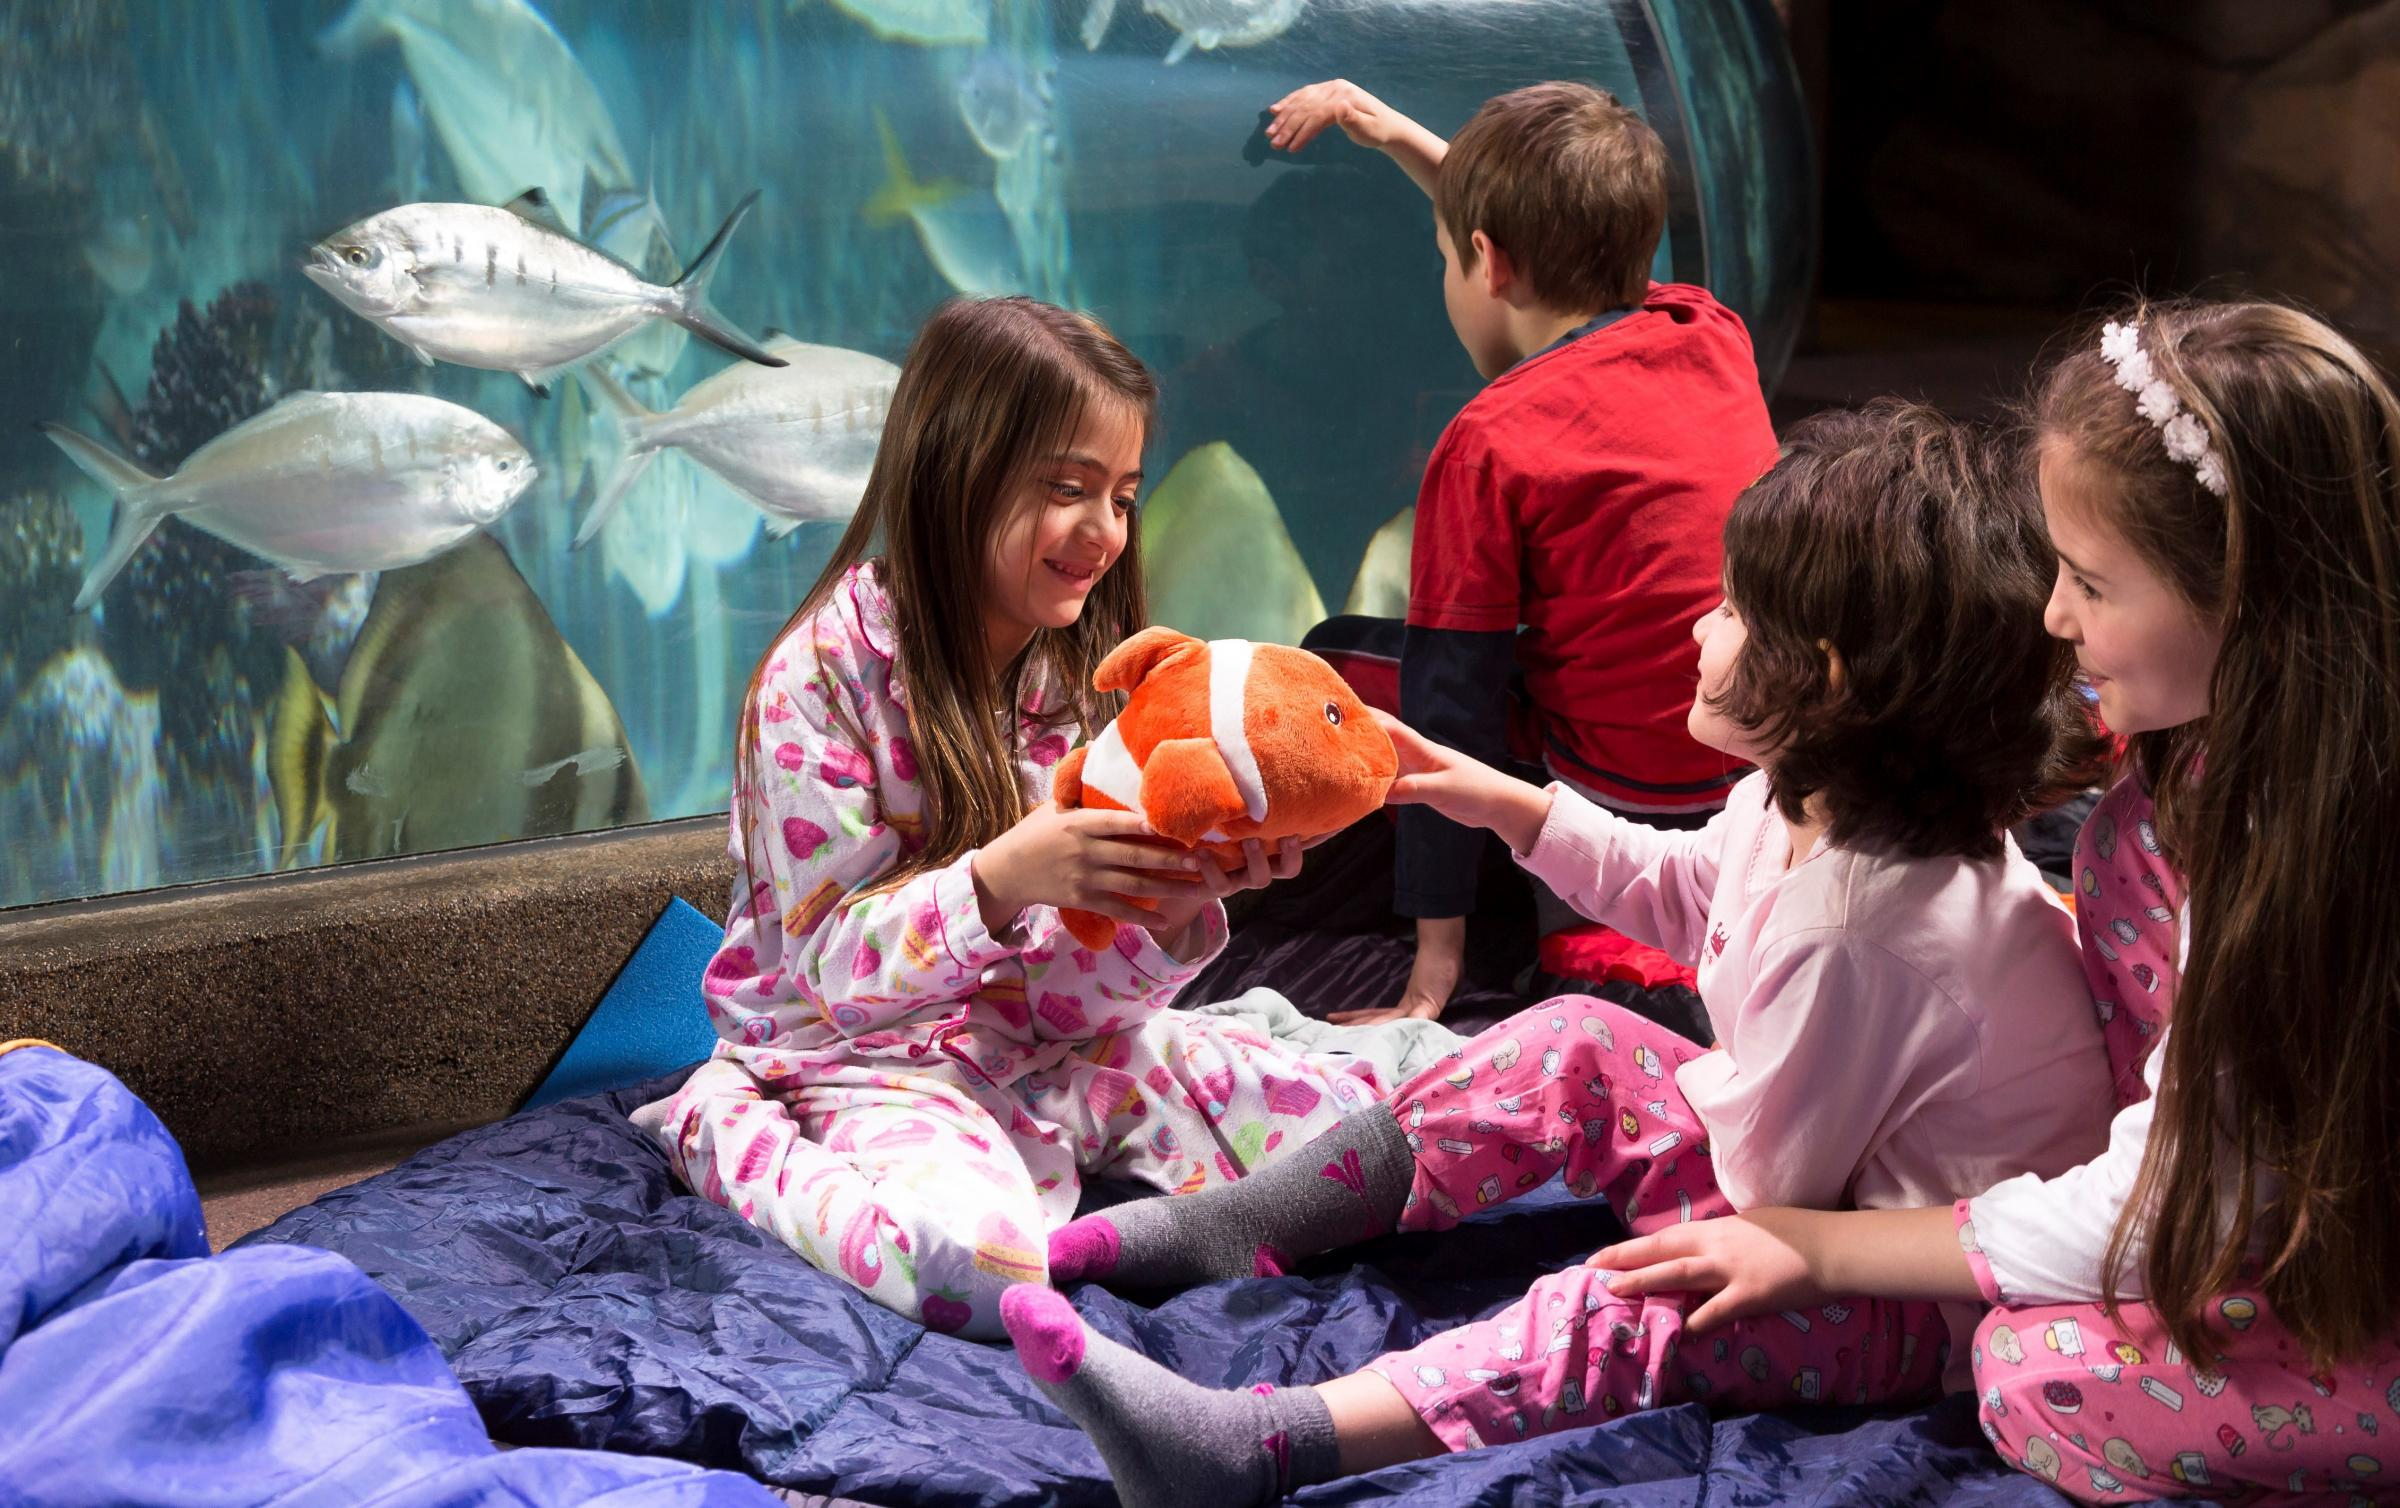 Children will have great fun at underwater sleepovers